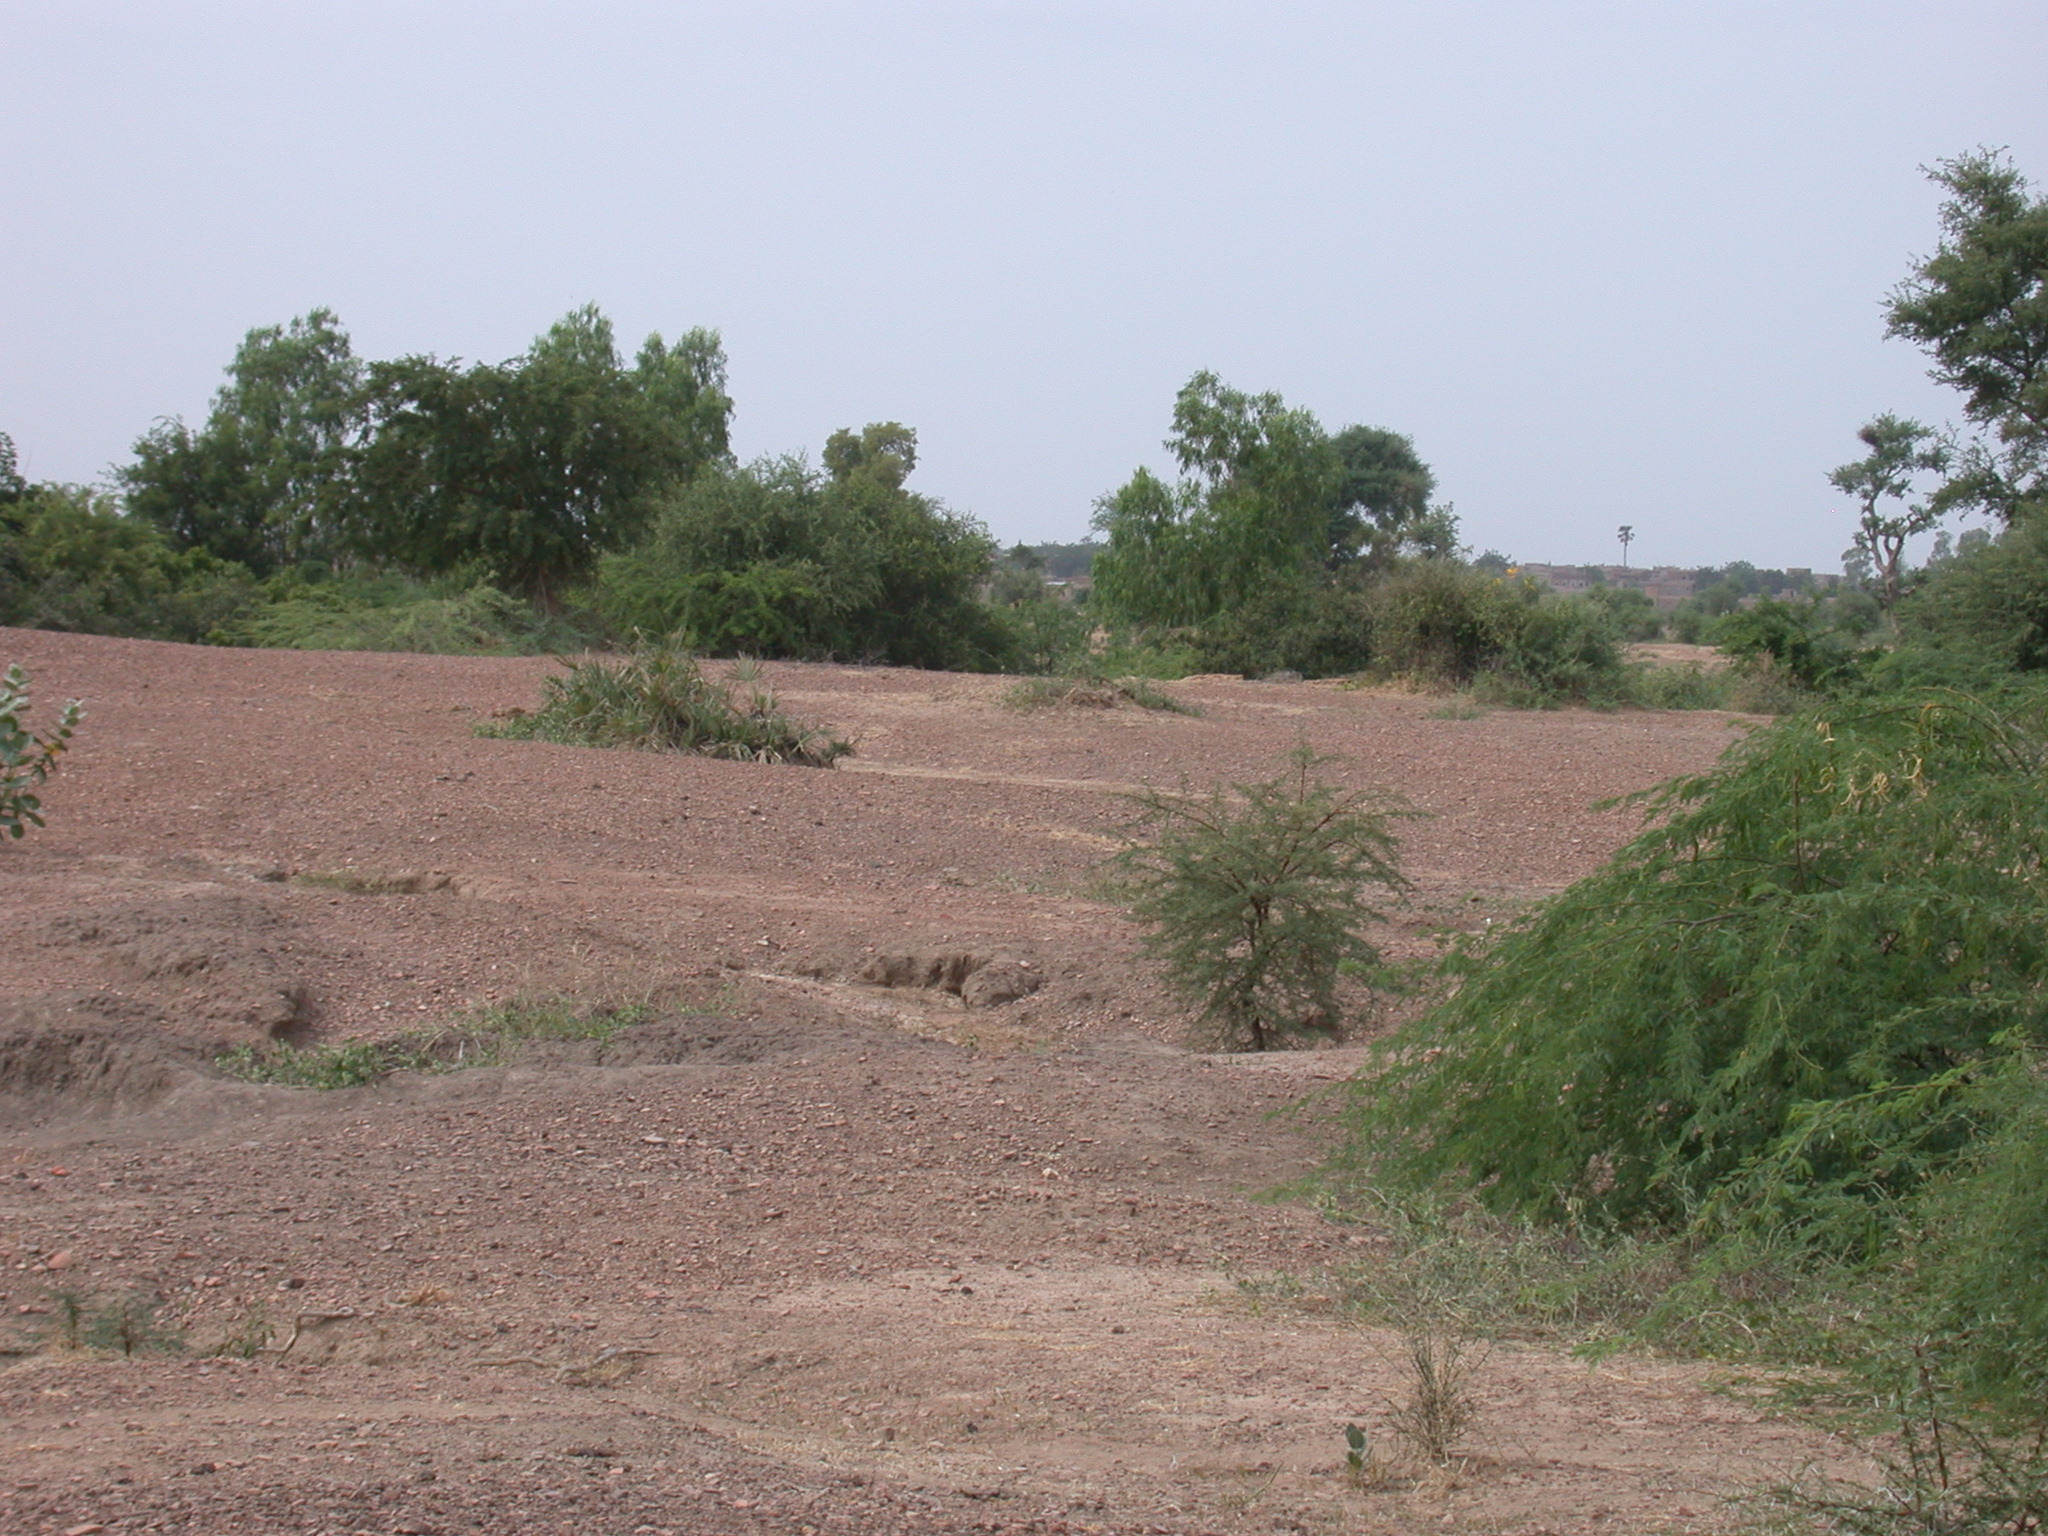 Ruins of Ancient City of Jenne-Jeno, Mali